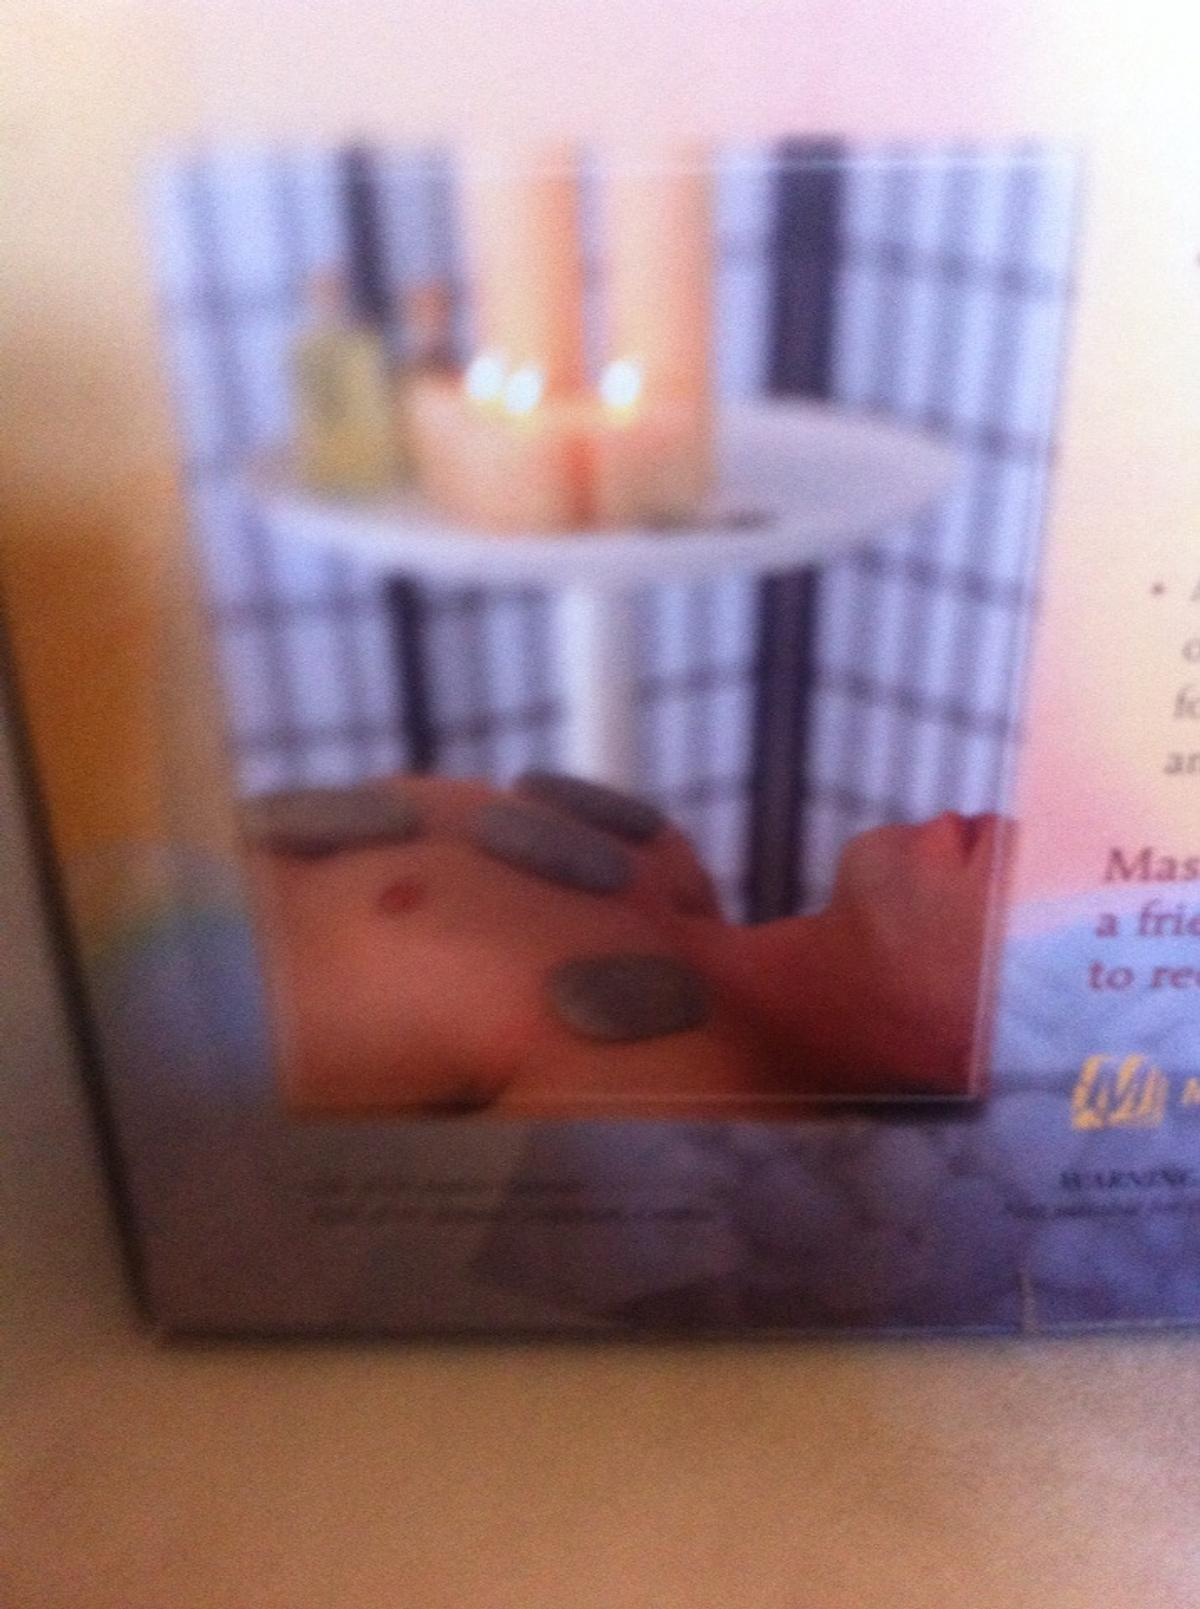 HOT STONE MASSAGE BOOK & KIT in FY3 Blackpool for £5 00 for